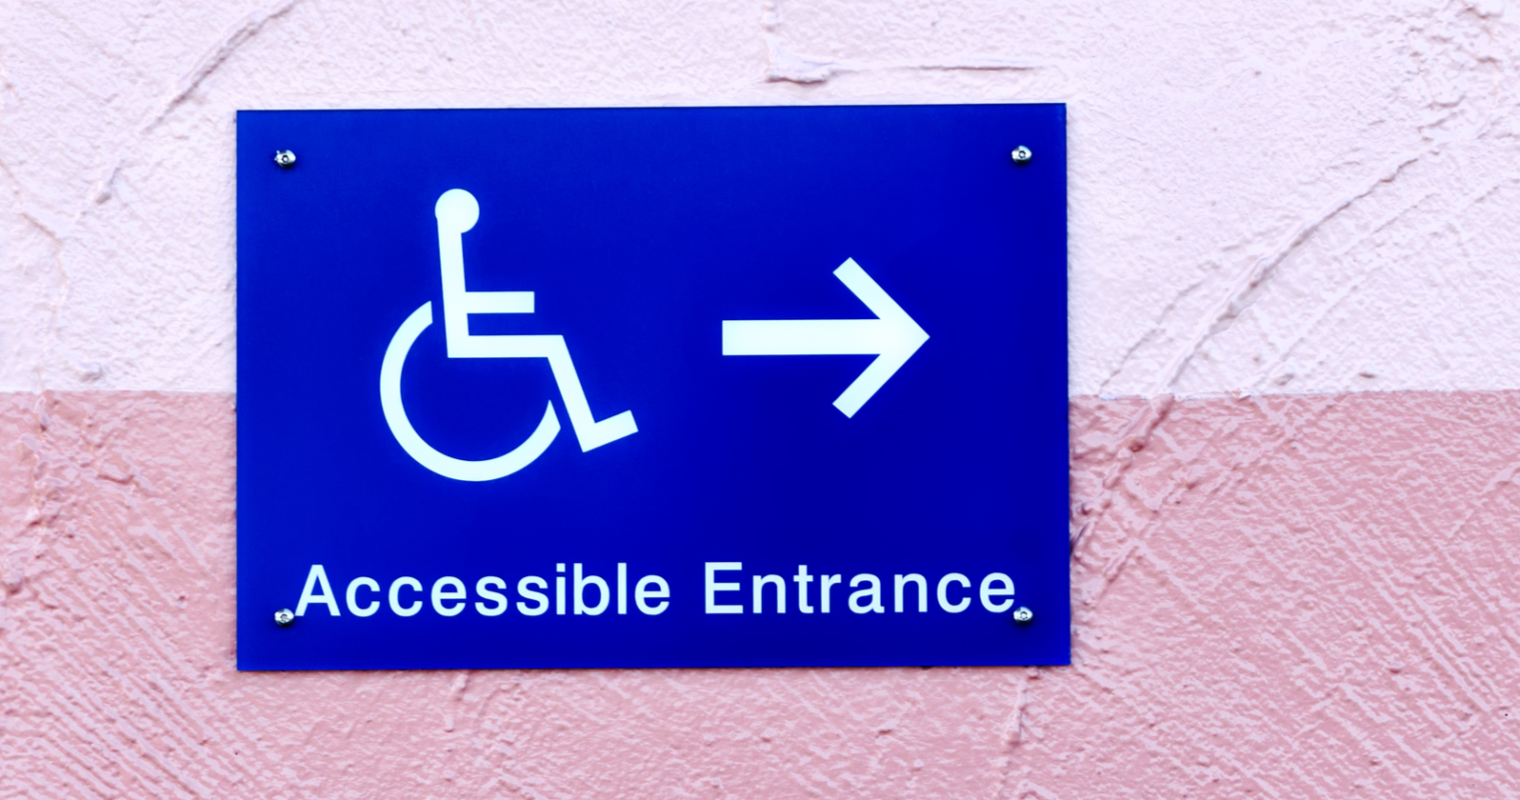 Google Maps Now Provides Accessibility Information for Over 40 Million Places